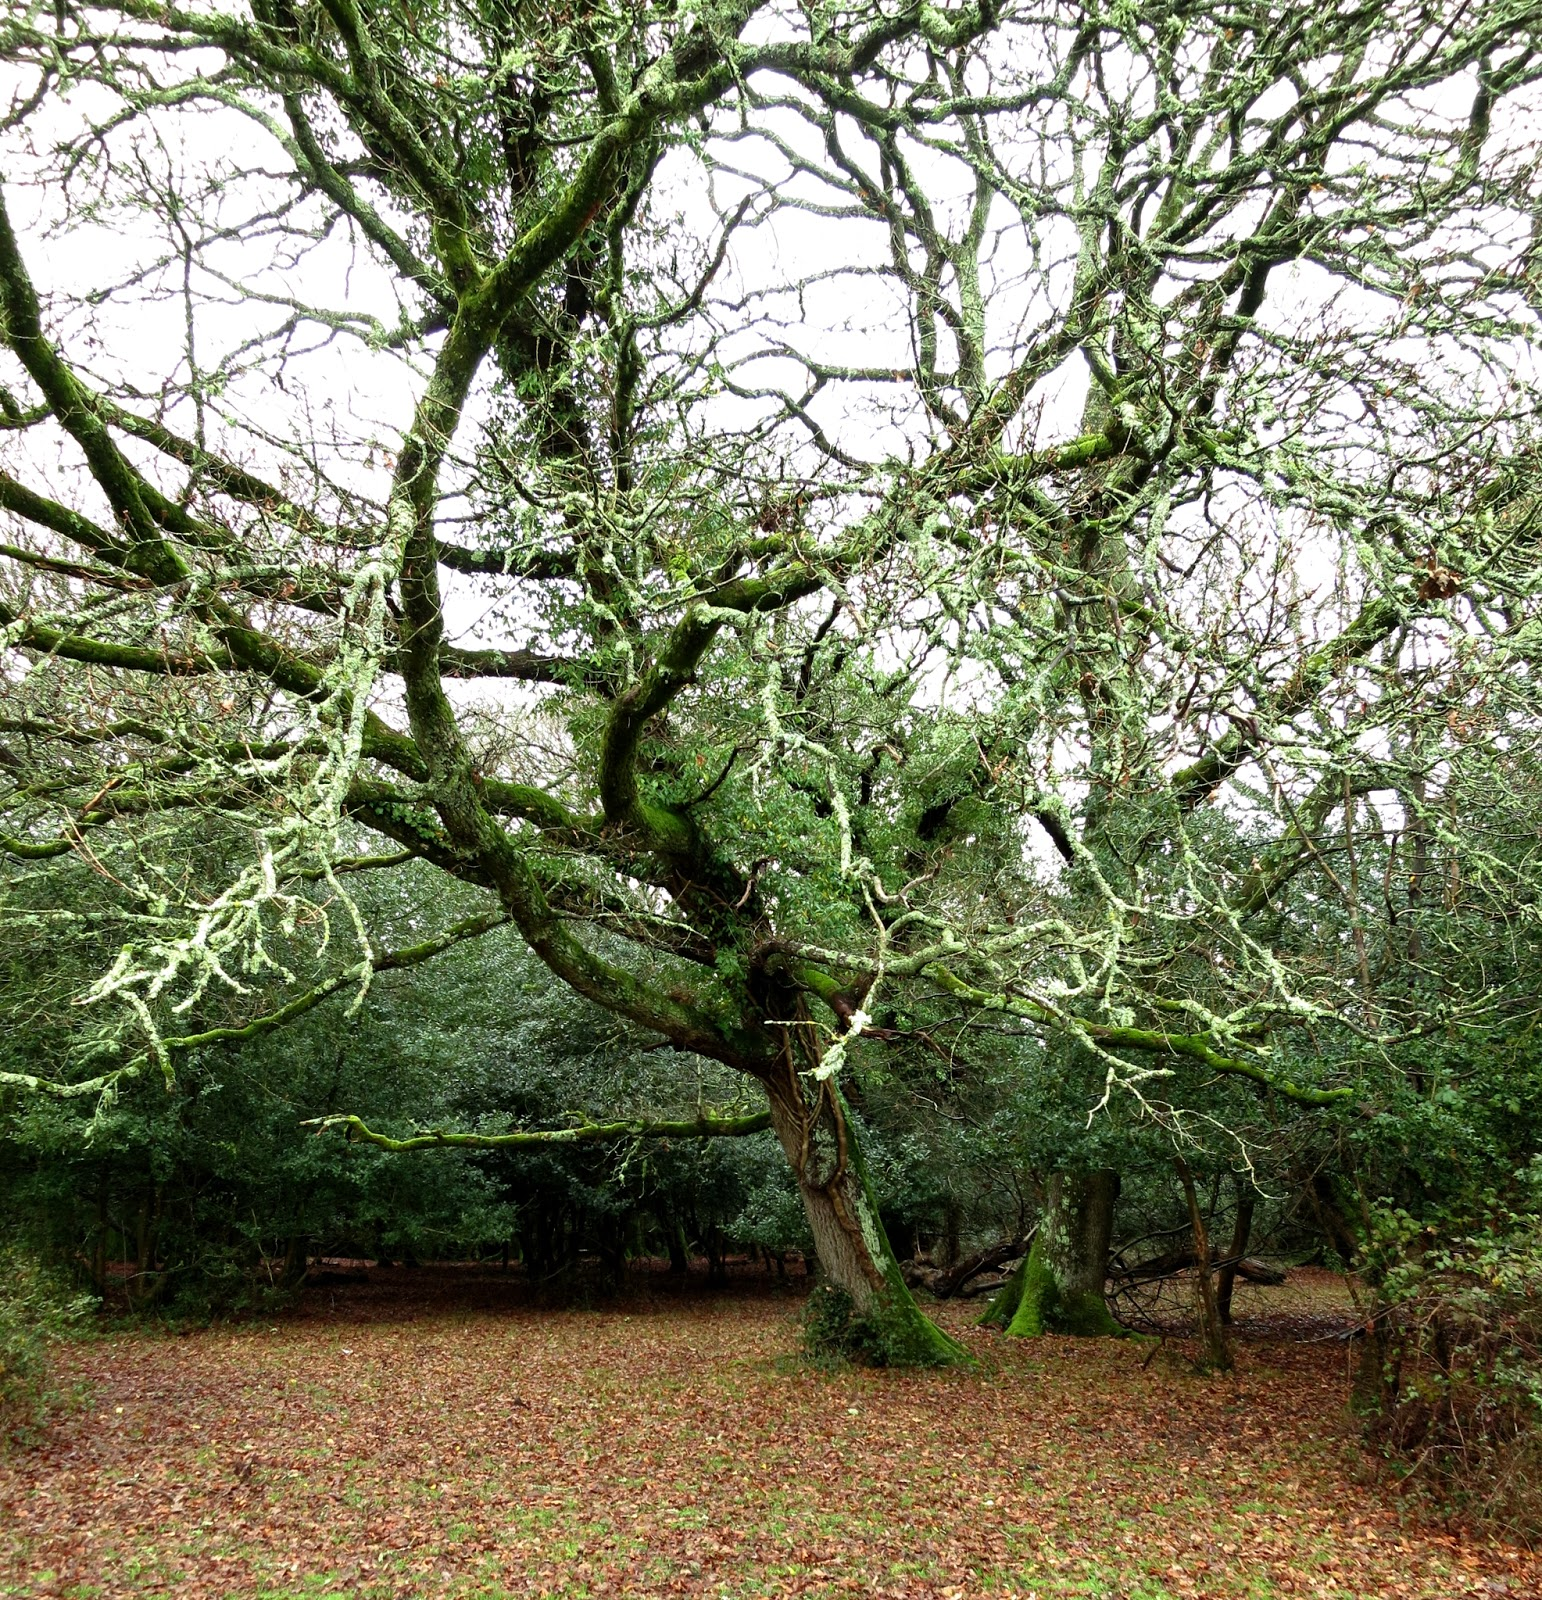 Leafless tree in the New Forest covered in moss and lichen.